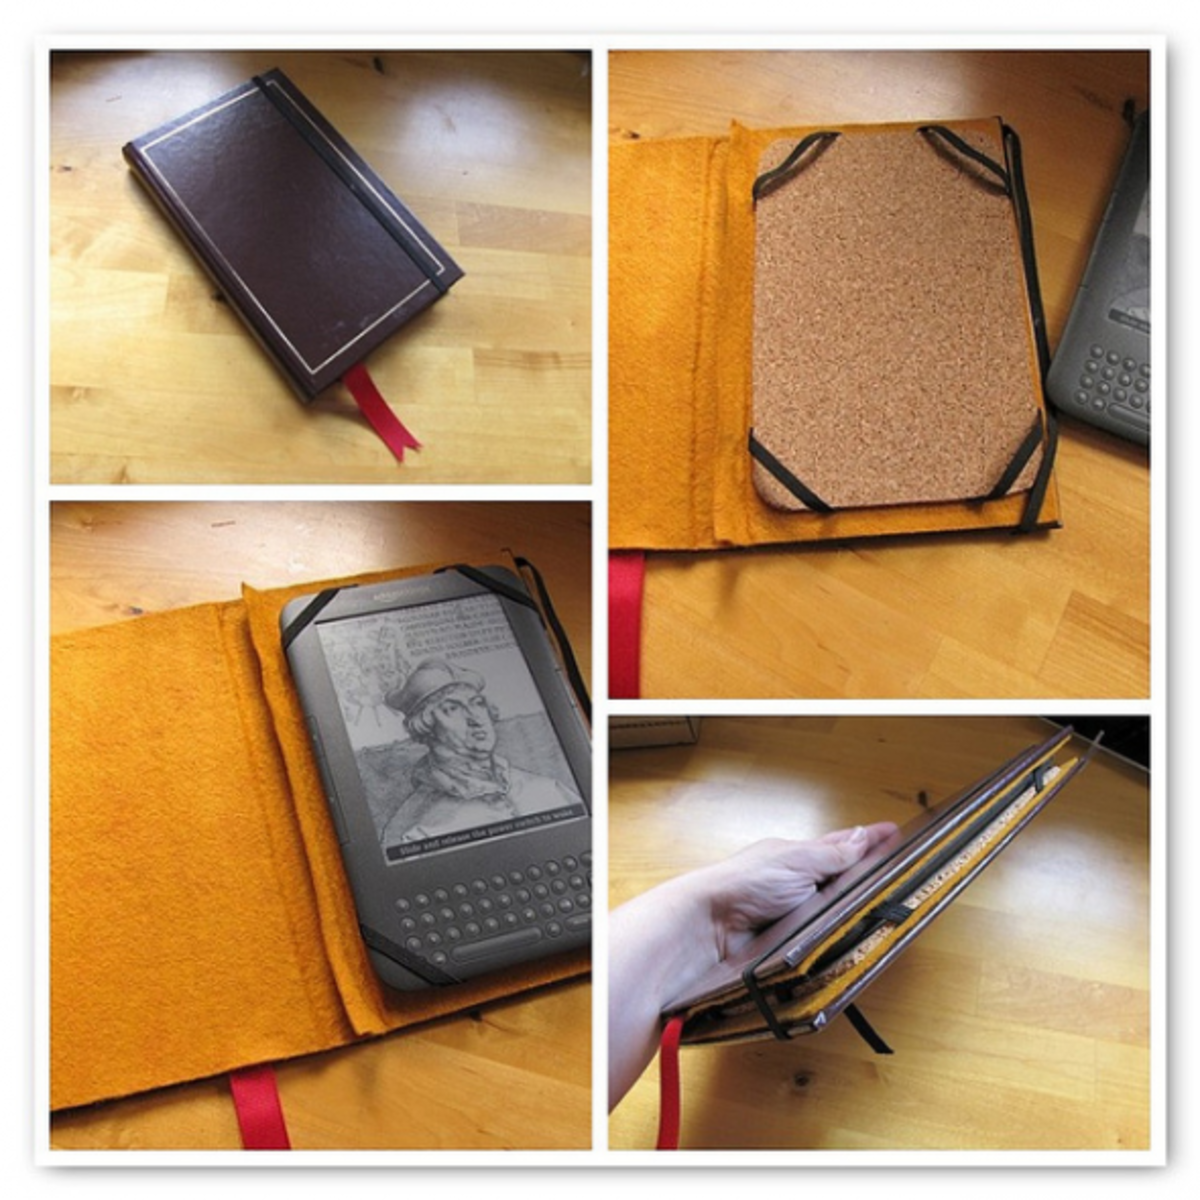 This is a brilliant and simple idea for a Kindle owner, recycling an old book cover into something functional. Cases for electronics are an ideal homemade gift - whether it's for a phone, Kindle, laptop or camera.